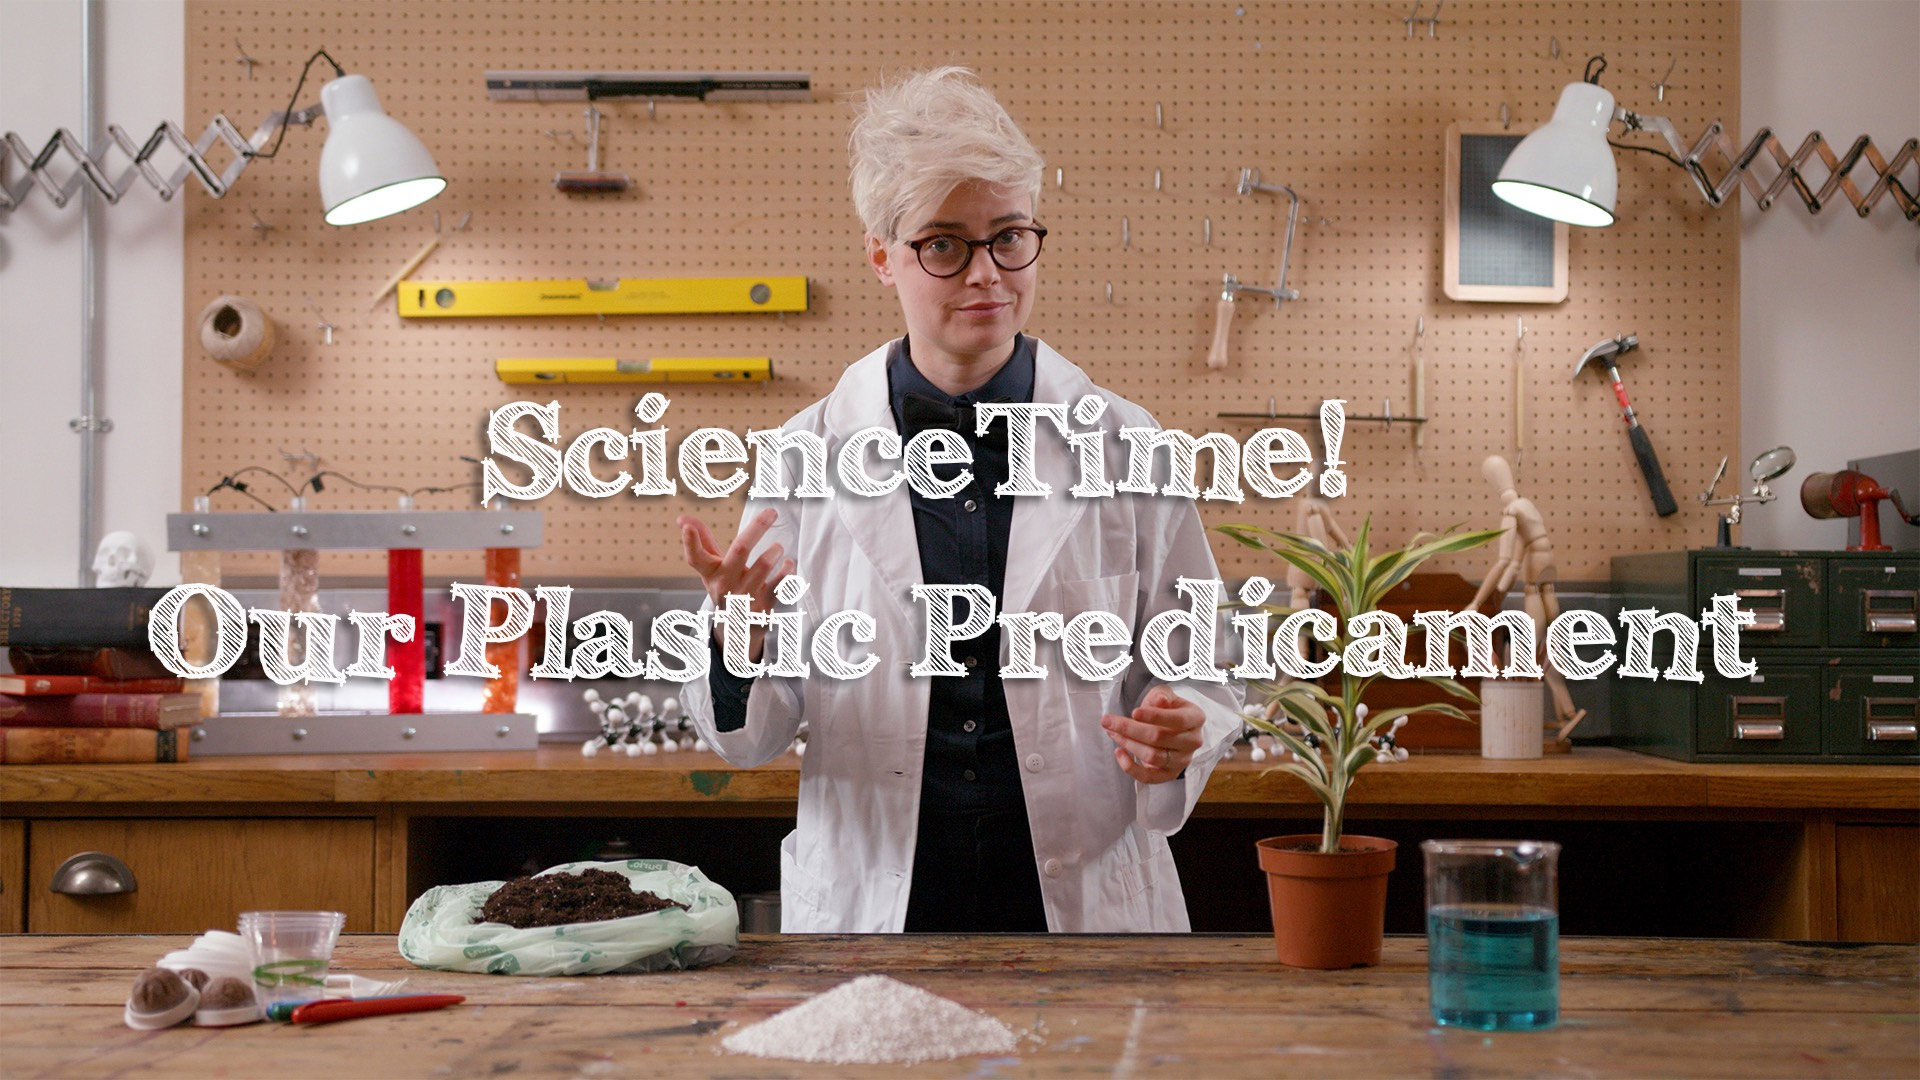 OURPLASTICPREDICAMENT_THUMBNAIL.jpg